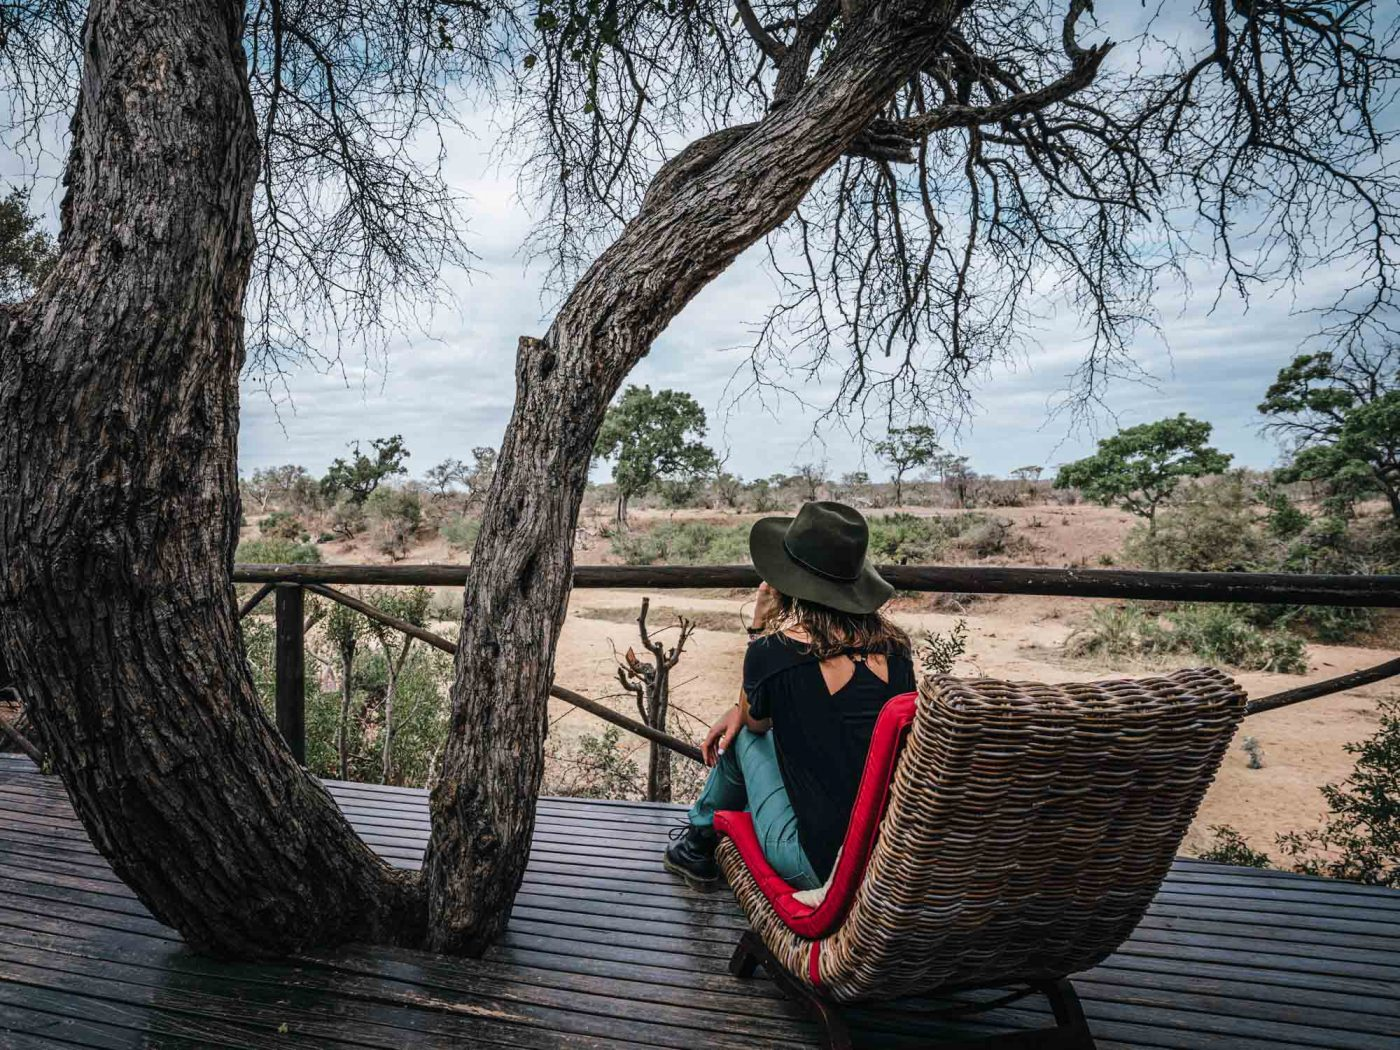 Overlooking the watering hole across the river at Pool hangs at Umlani Bushcamp, Timbavati Nature Reserve